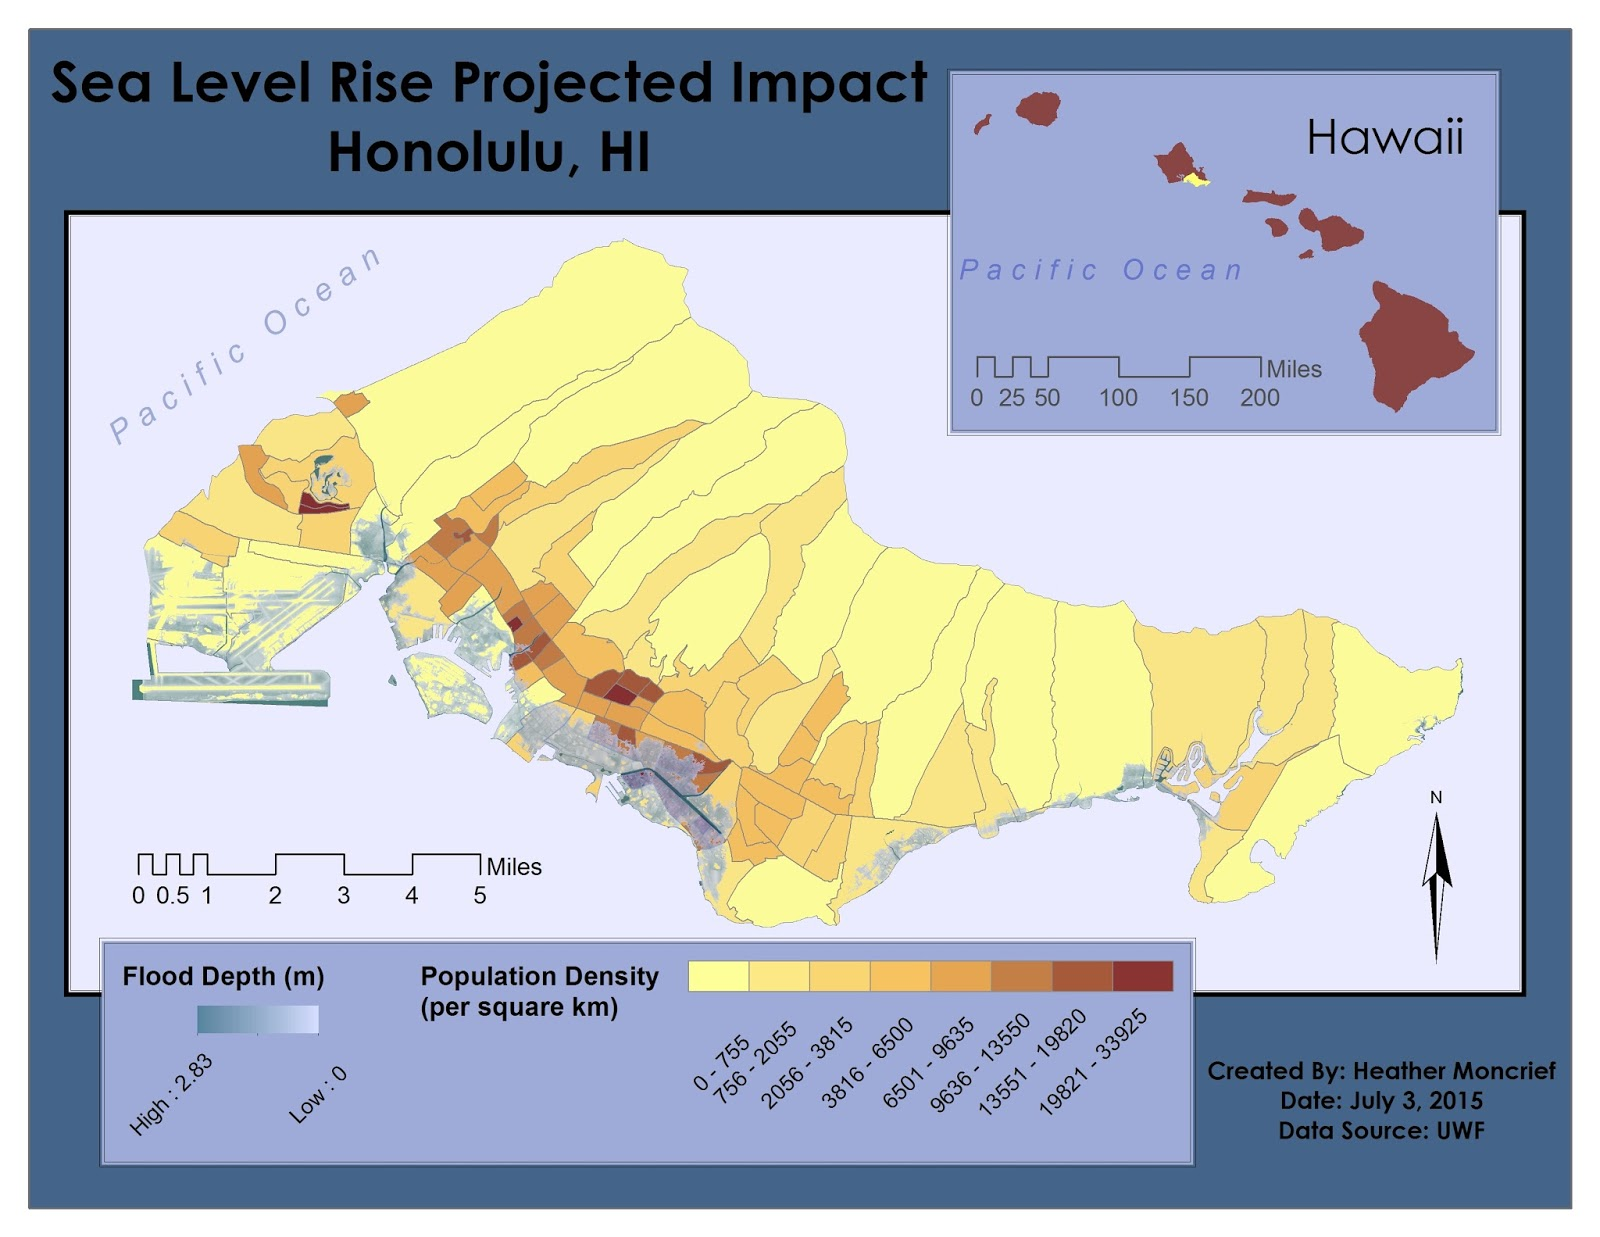 map of district of honolulu showing impact of 6 foot sea level rise and includes population densities of the region